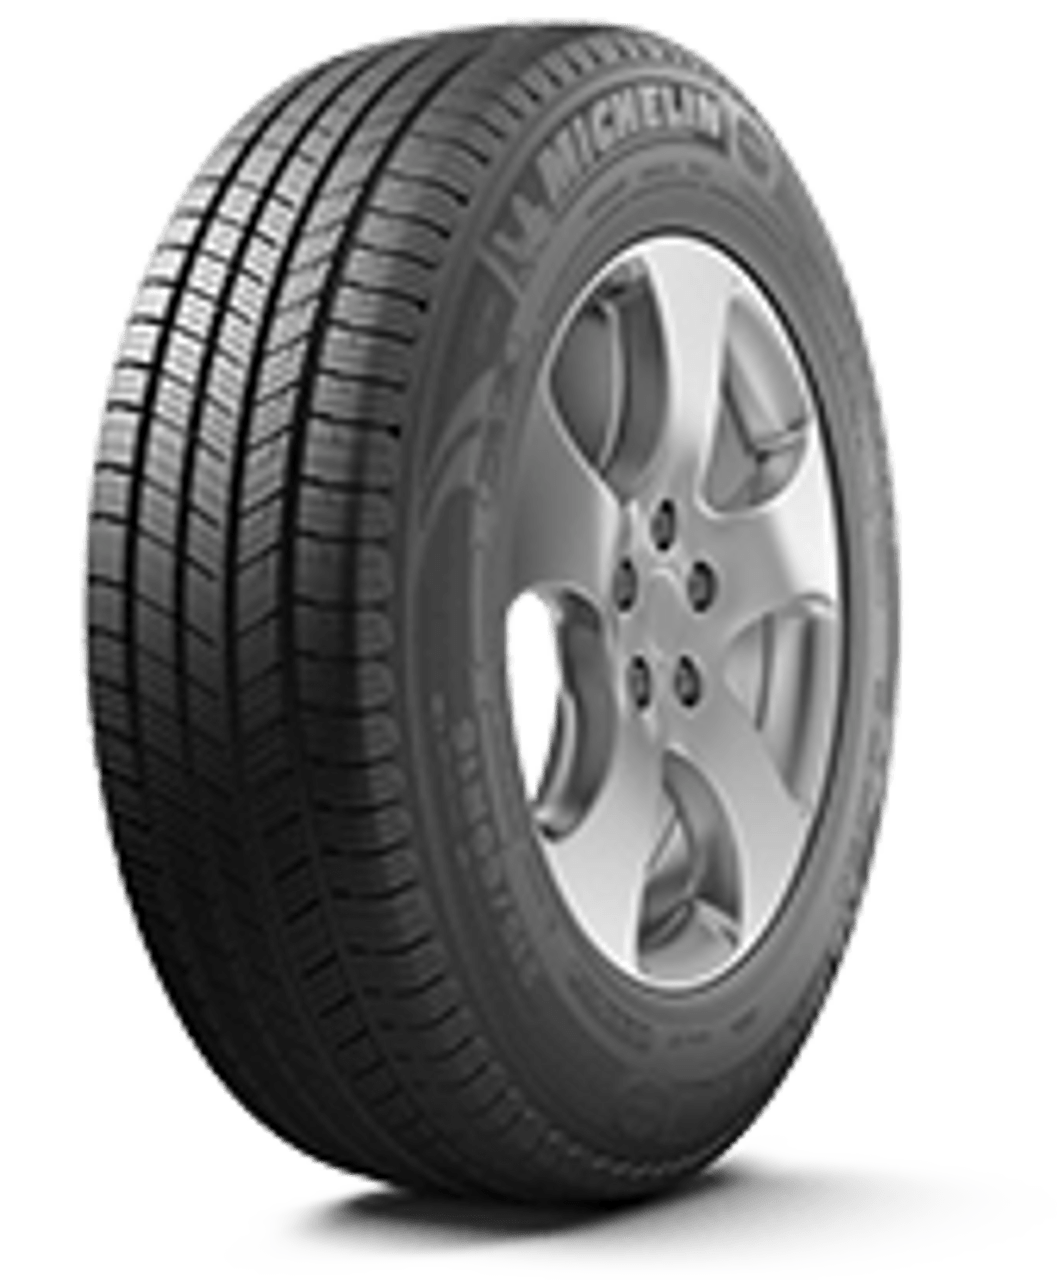 Michelin Defender Xt Tire Review Priority Tire